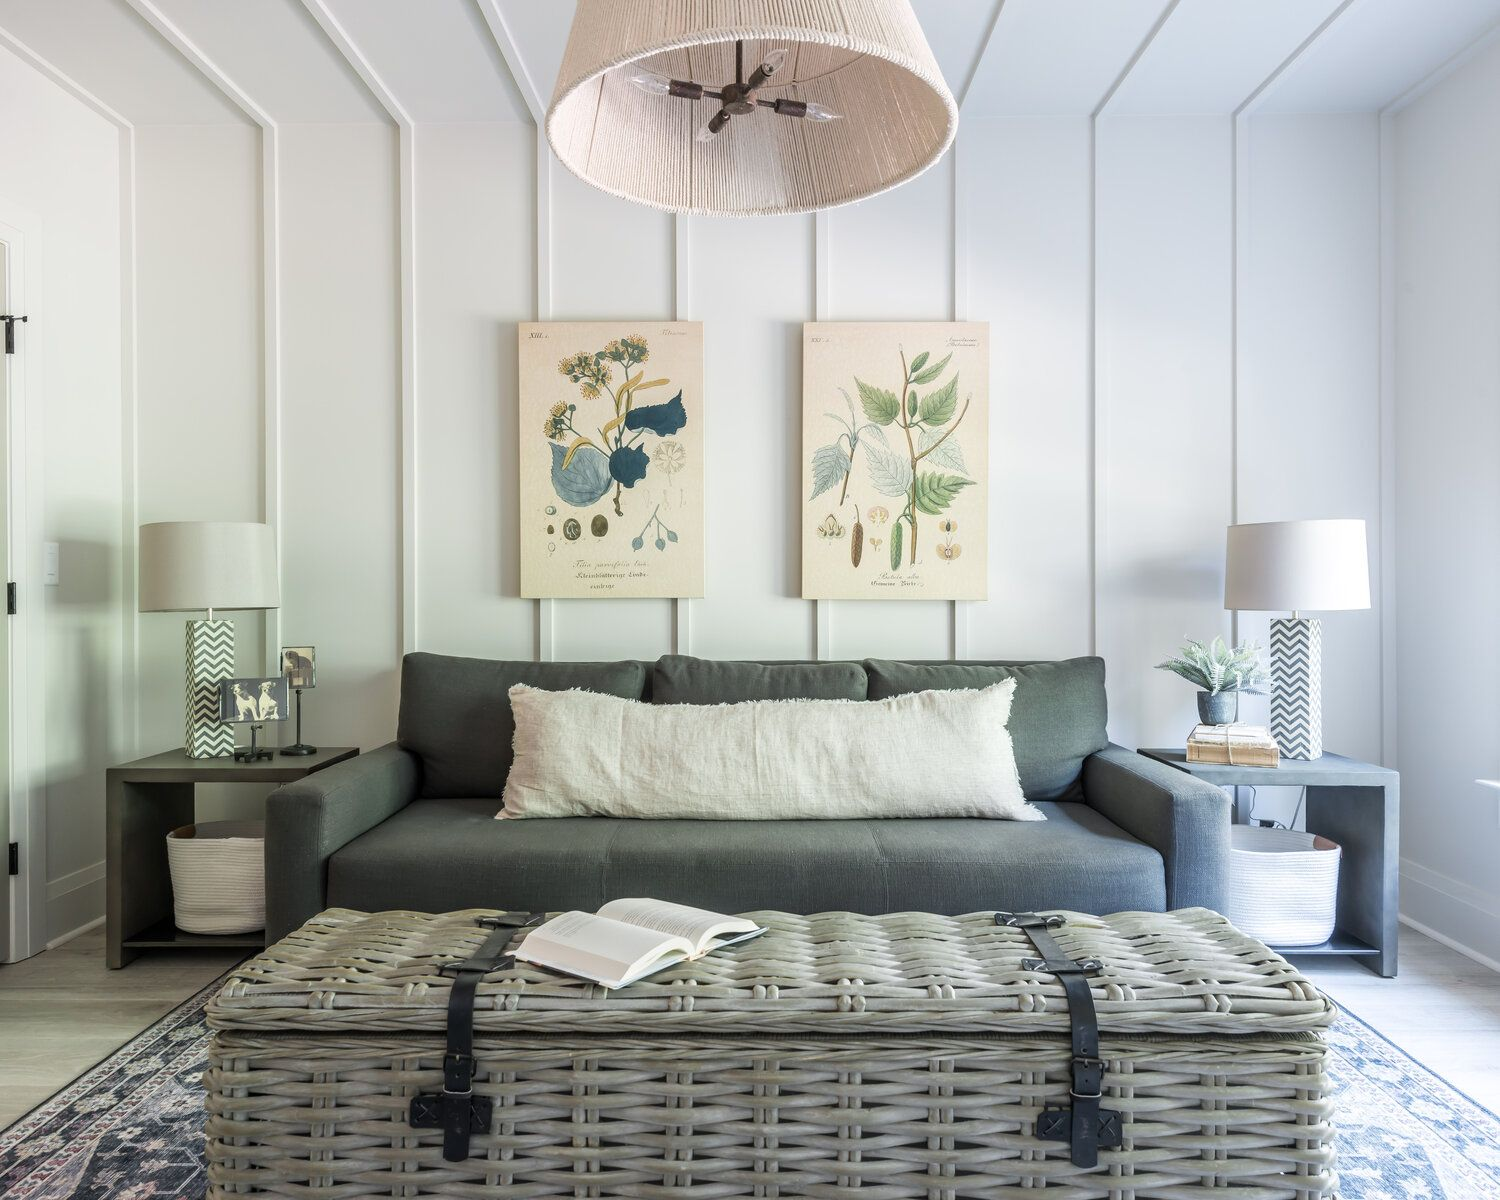 Creating a guest room interior design pull